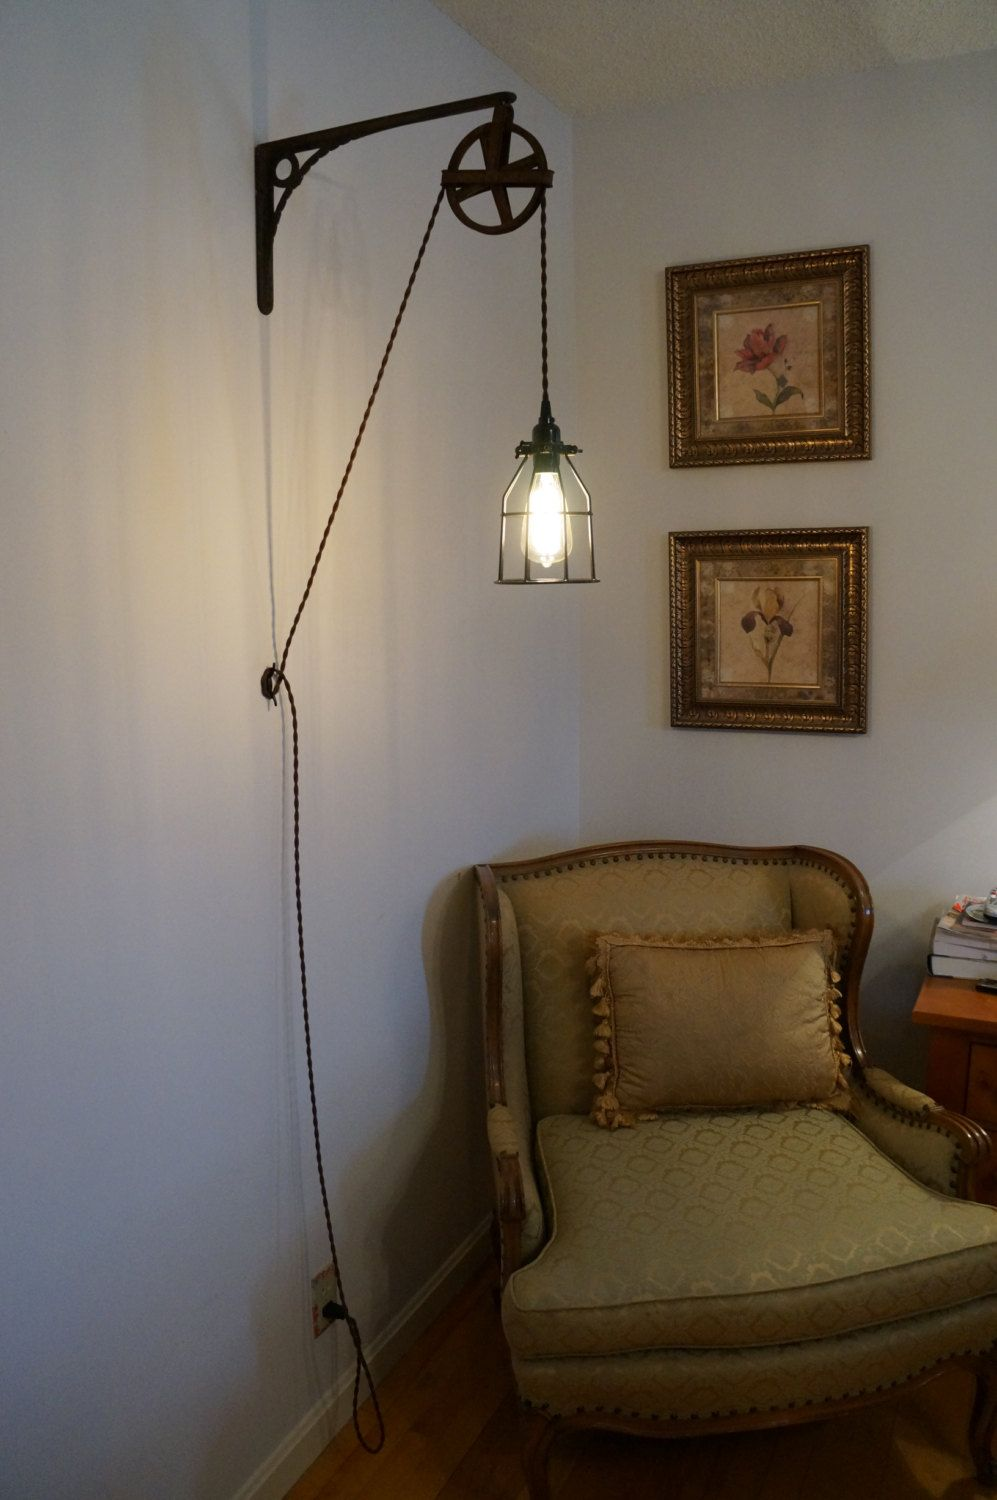 Vintage Bedside Wall Lamps : Similar to our bedside lighting, but with wooden brackets & cloth covered cord. ??????? ...